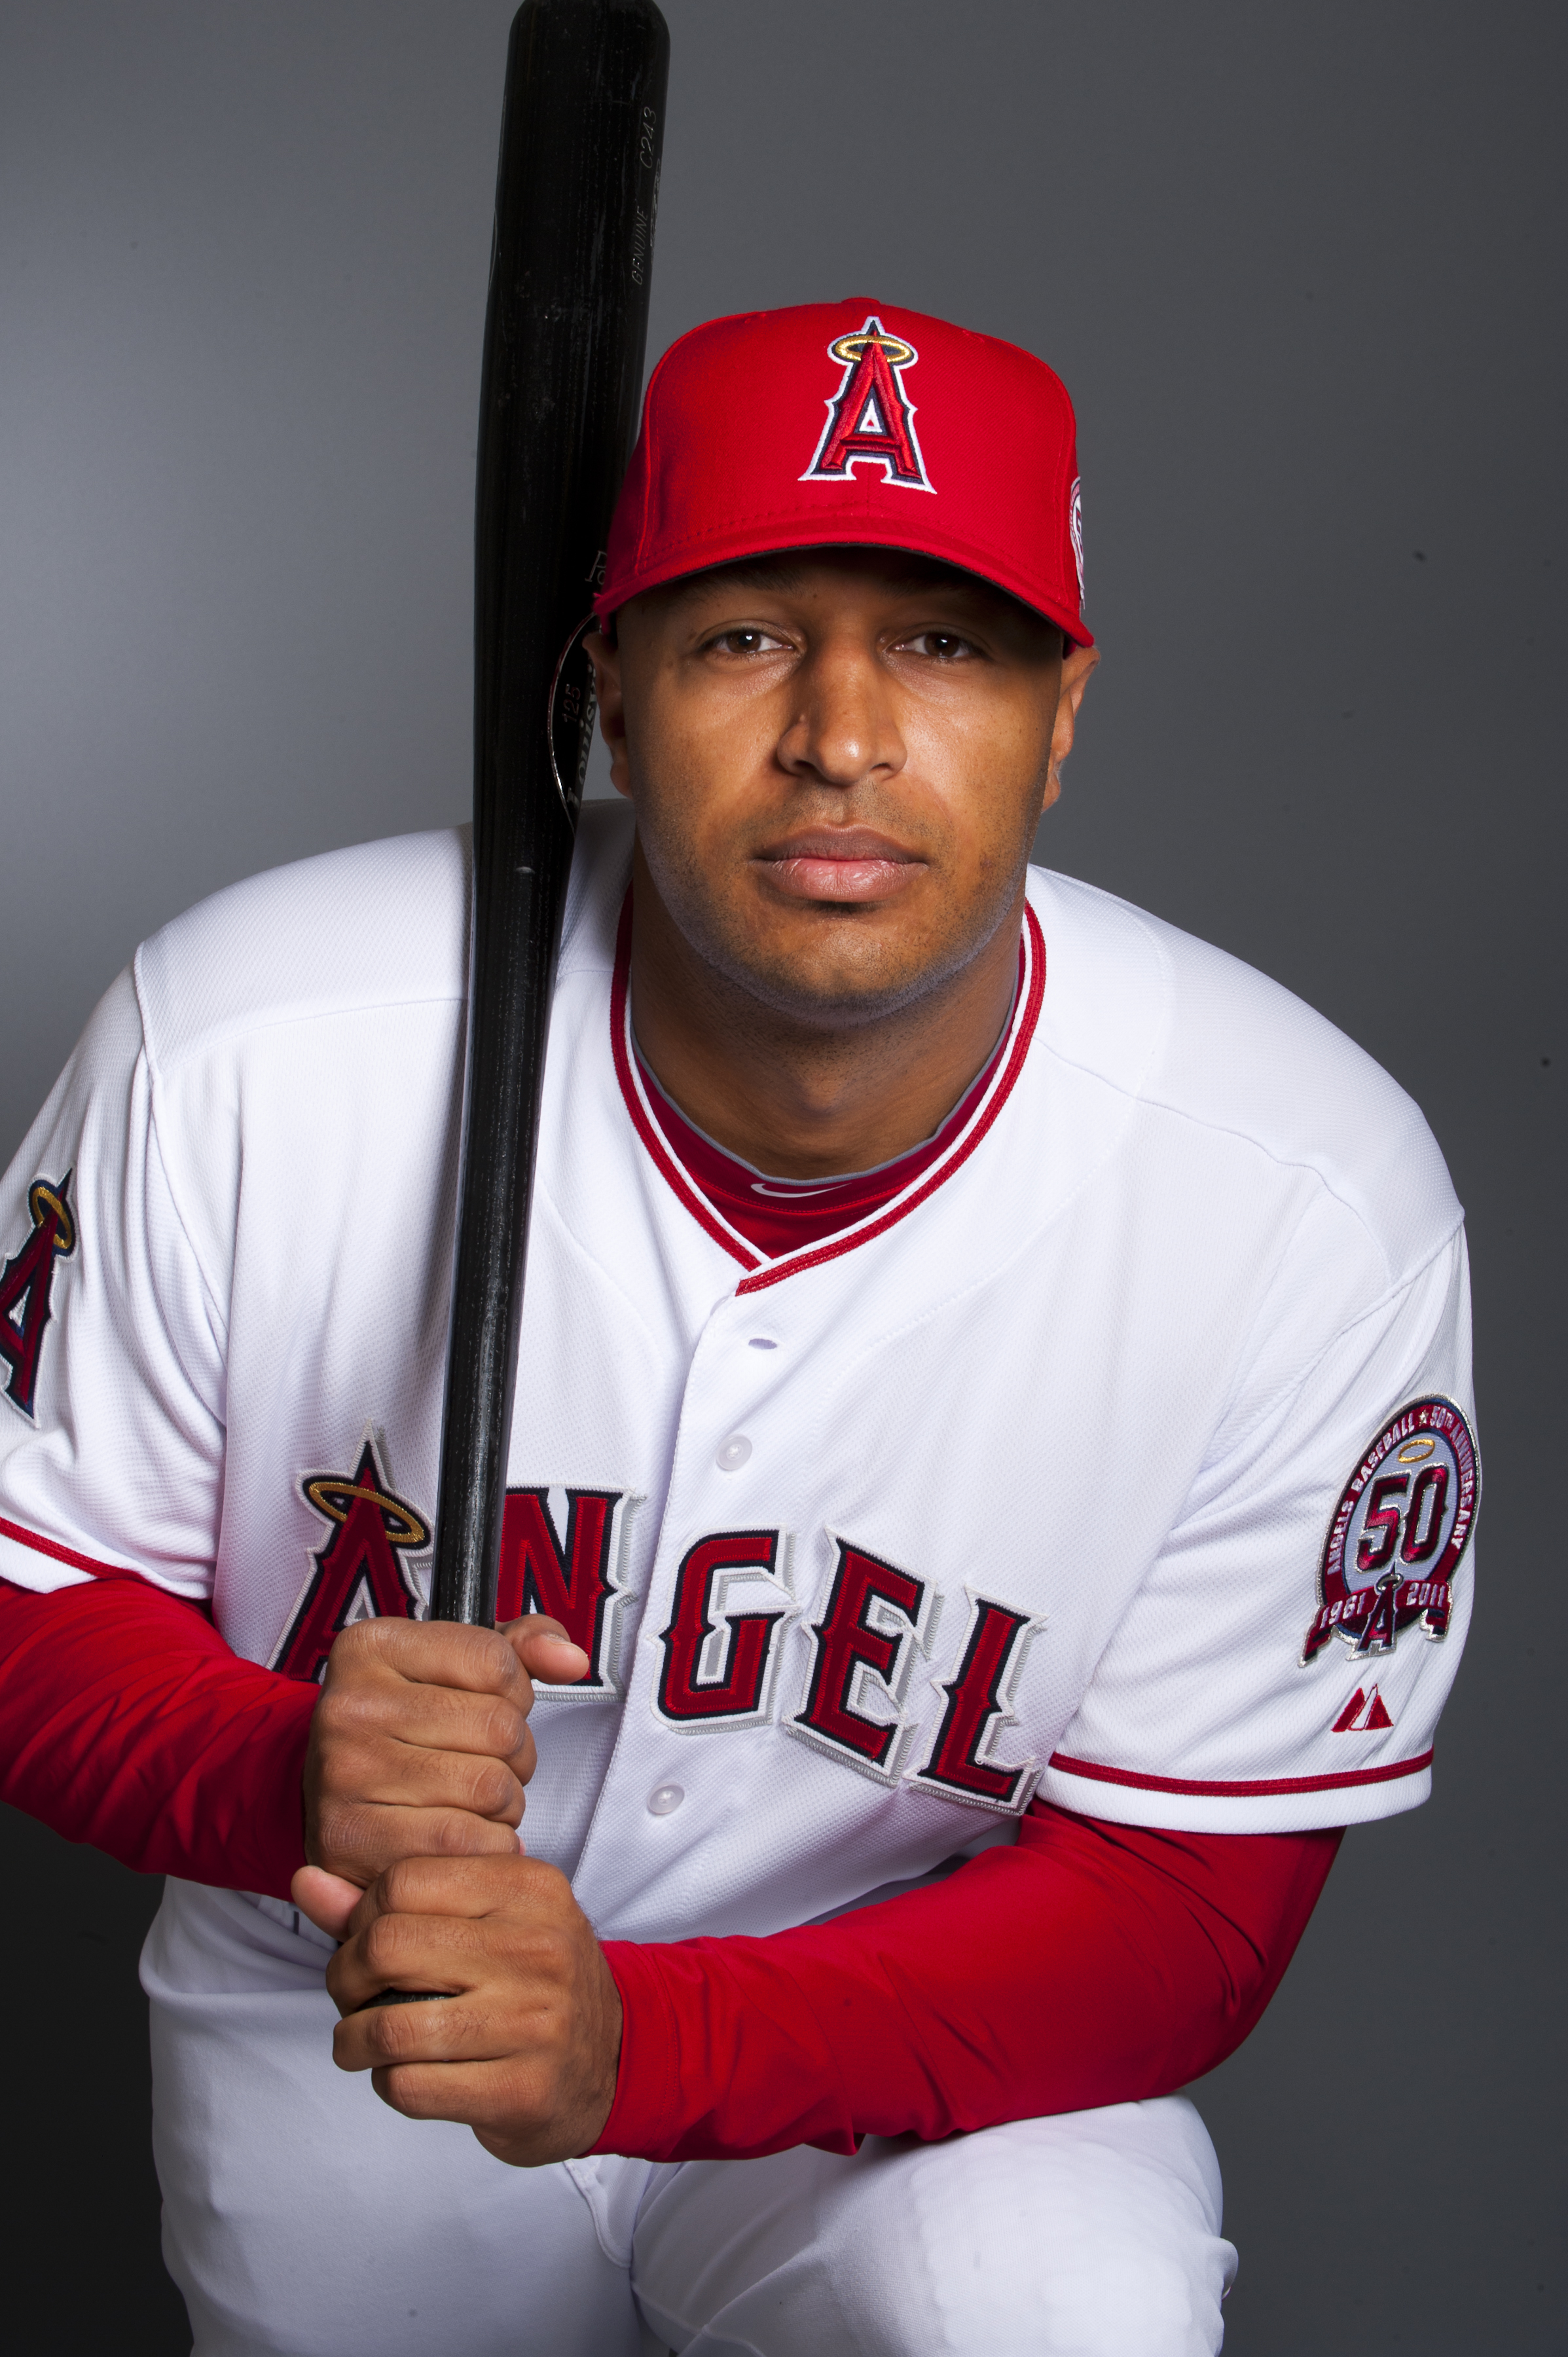 TEMPE, AZ - FEBRUARY 21: Vernon Wells #10 of the Los Angeles Angels of Anaheim poses during their photo day at Tempe Diablo Stadium on February 21, 2011 in Tempe,Arizona. (Photo by Rob Tringali/Getty Images)